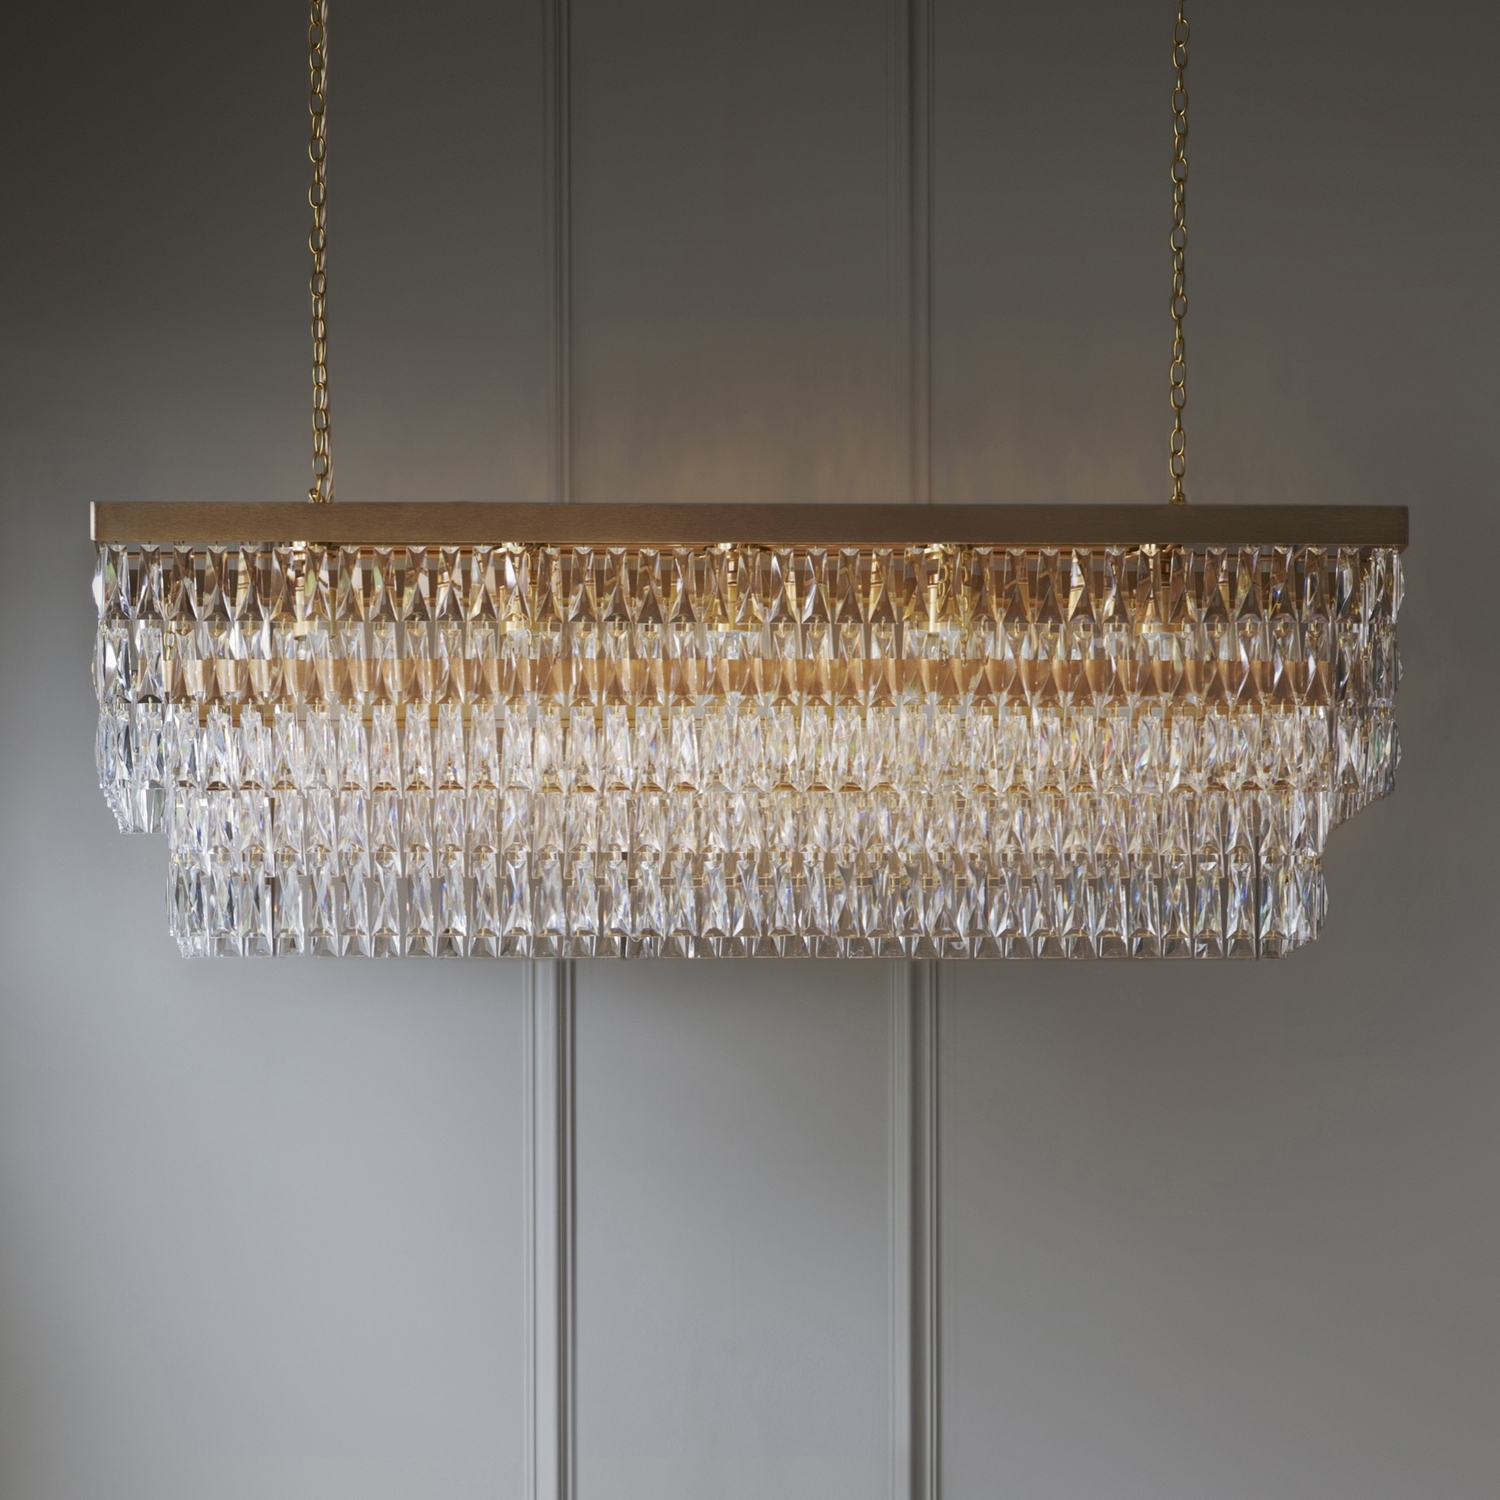 Most Recently Released Clear Crystal Rectangular Chandelier – Tigermoth Lighting Intended For Crystal Gold Chandeliers (View 16 of 20)